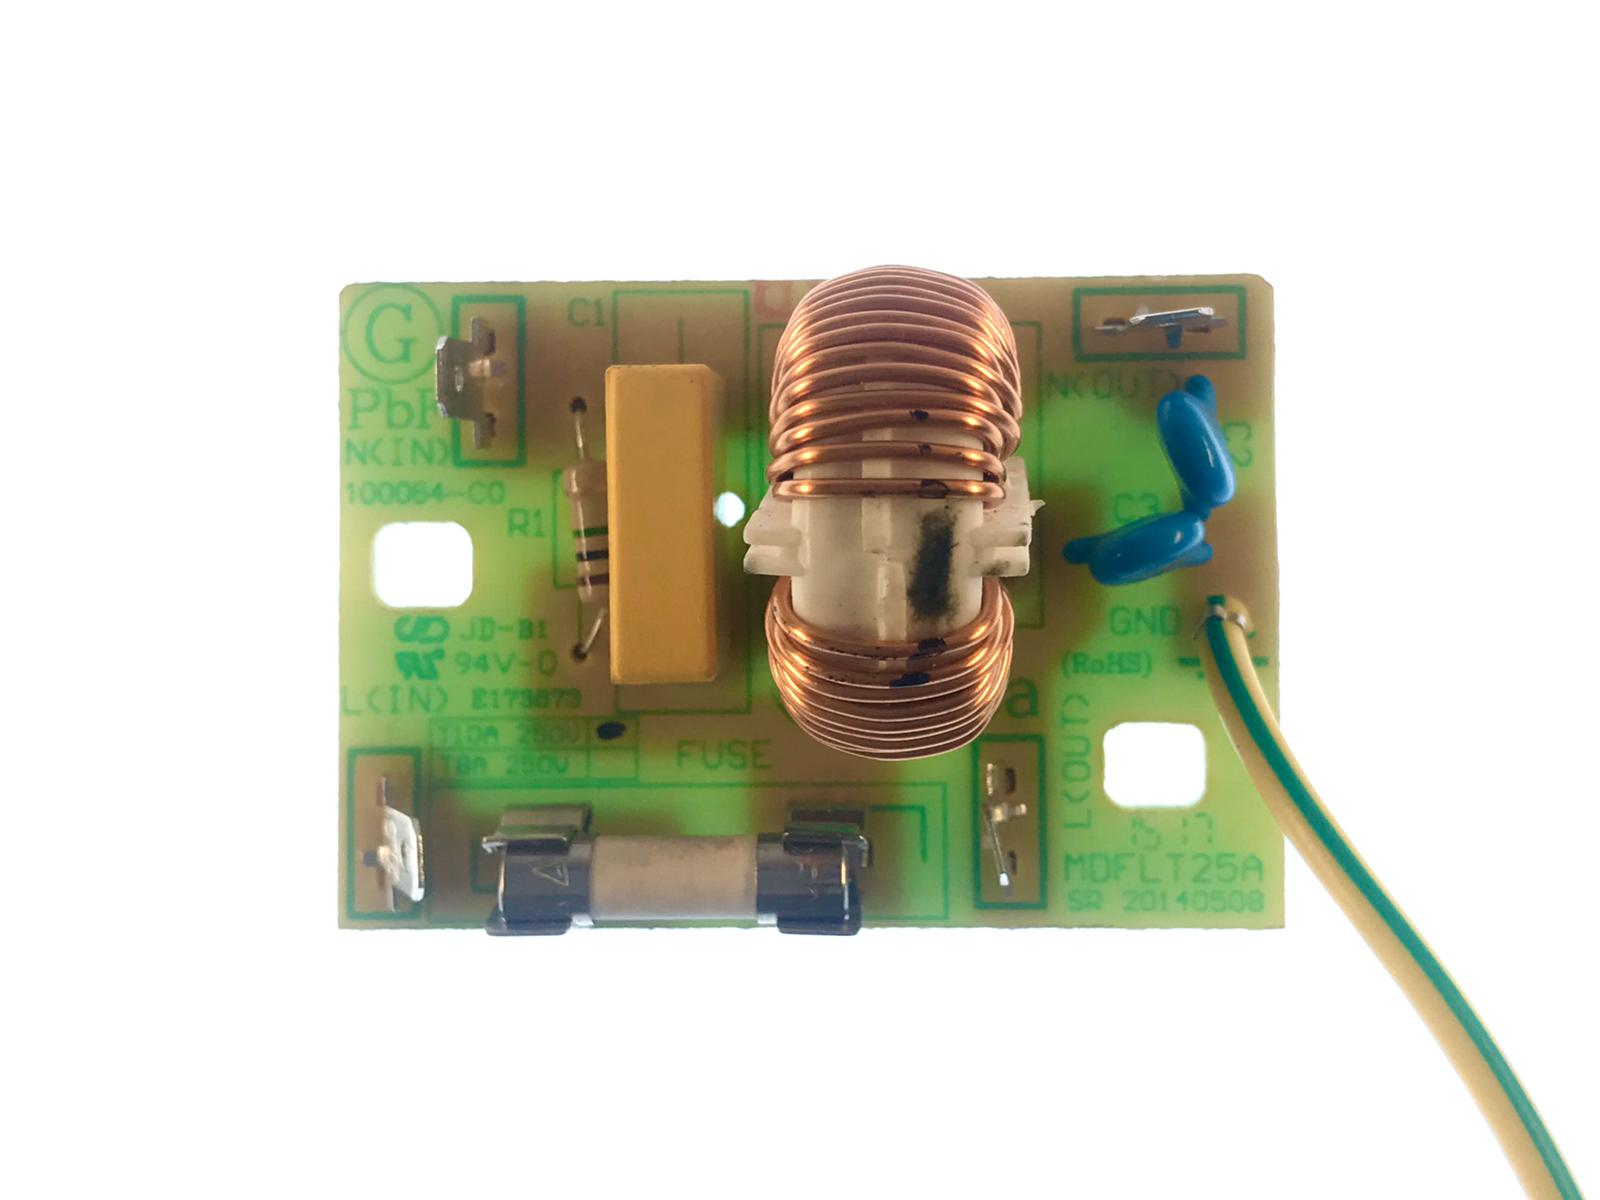 Oven Noise Filter For Sharp R28STW Microwave MDFLT25A